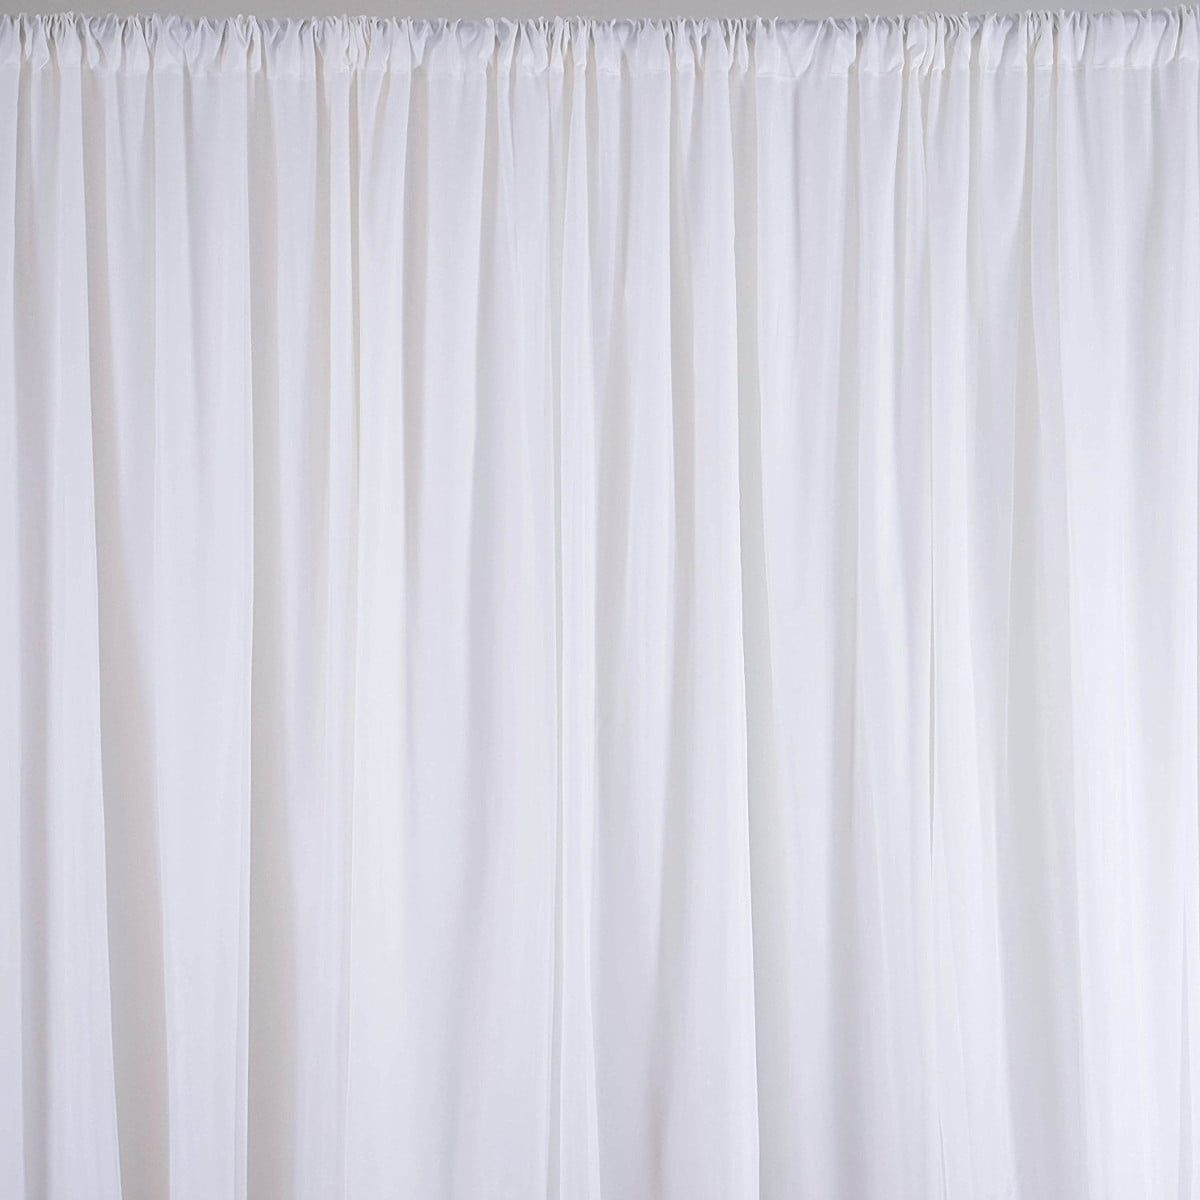 M White Fabric Backdrop D Curtains